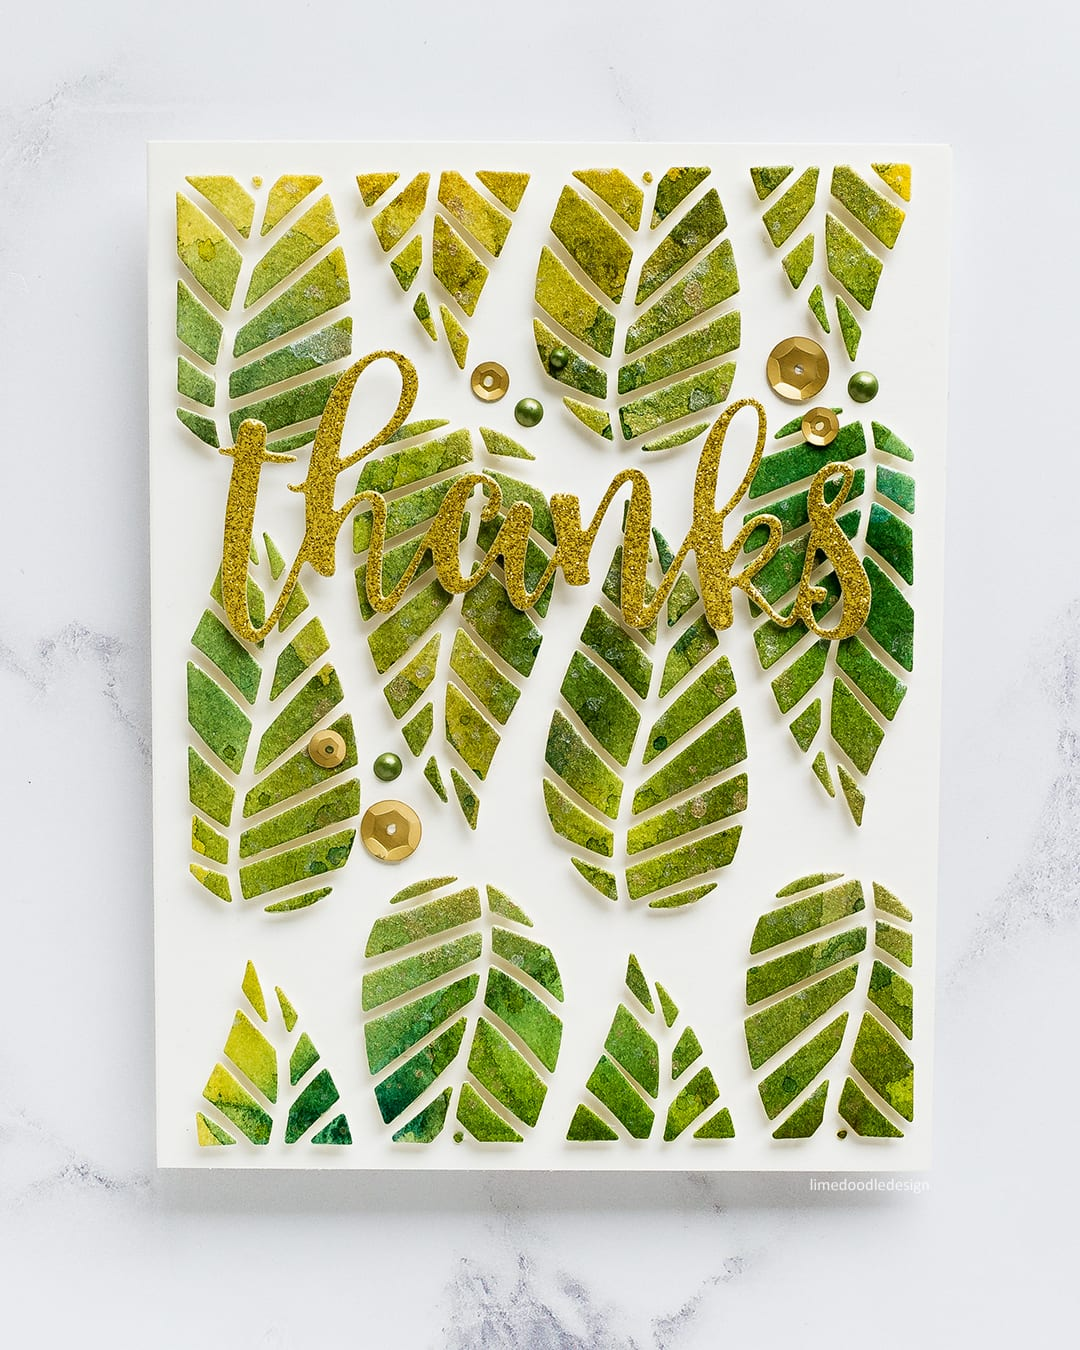 Watercoloured striped leaves thank you card by Debby Hughes using the new August release from Altenew. Find out more here: https://limedoodledesign.com/2017/08/altenew-august-2017-release-blog-hop-day-2-giveaway/